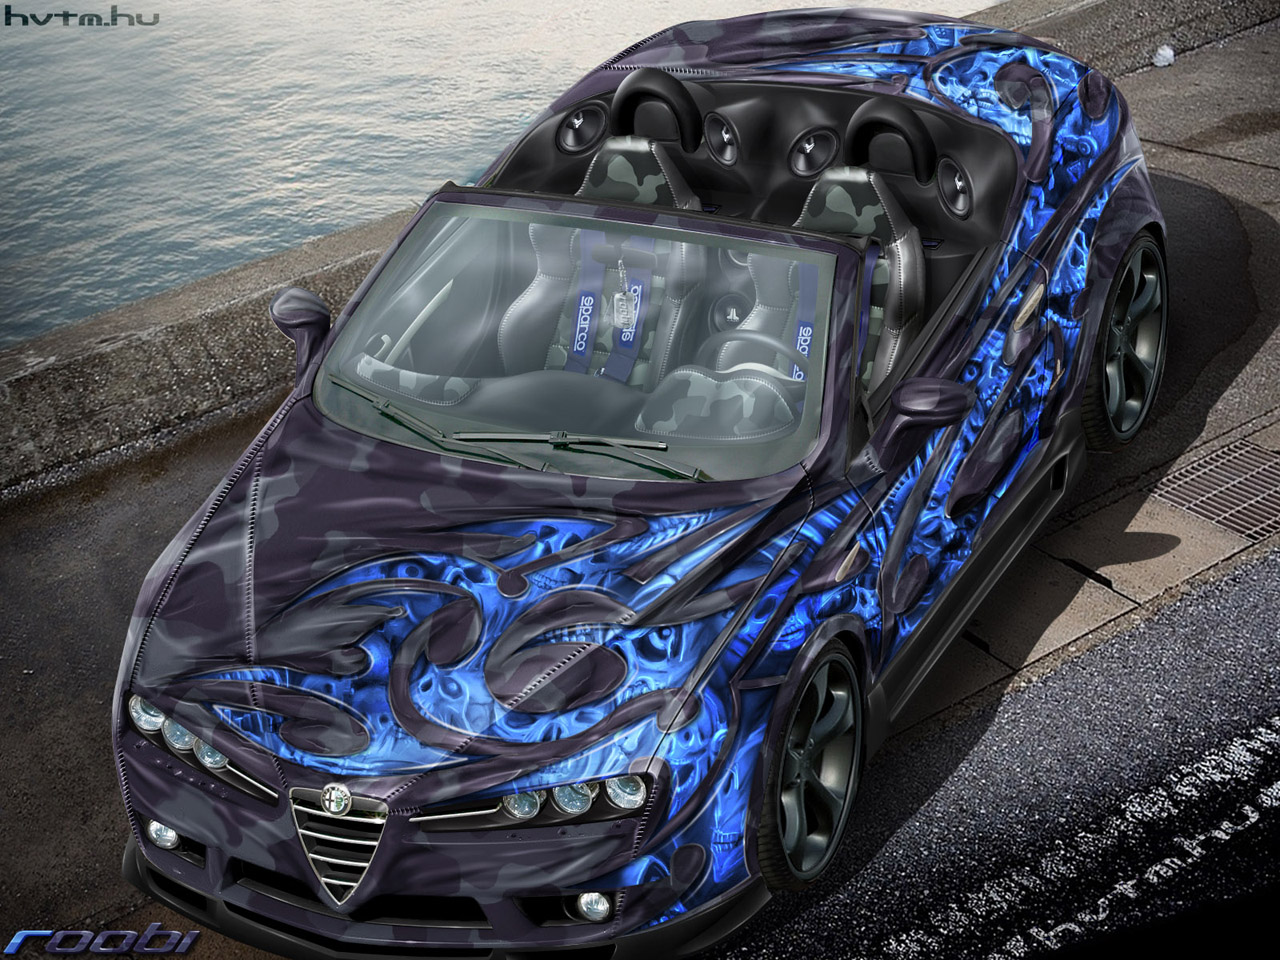 Airbrush Auto Inspired Ambitions: Airbrush Art On Cars